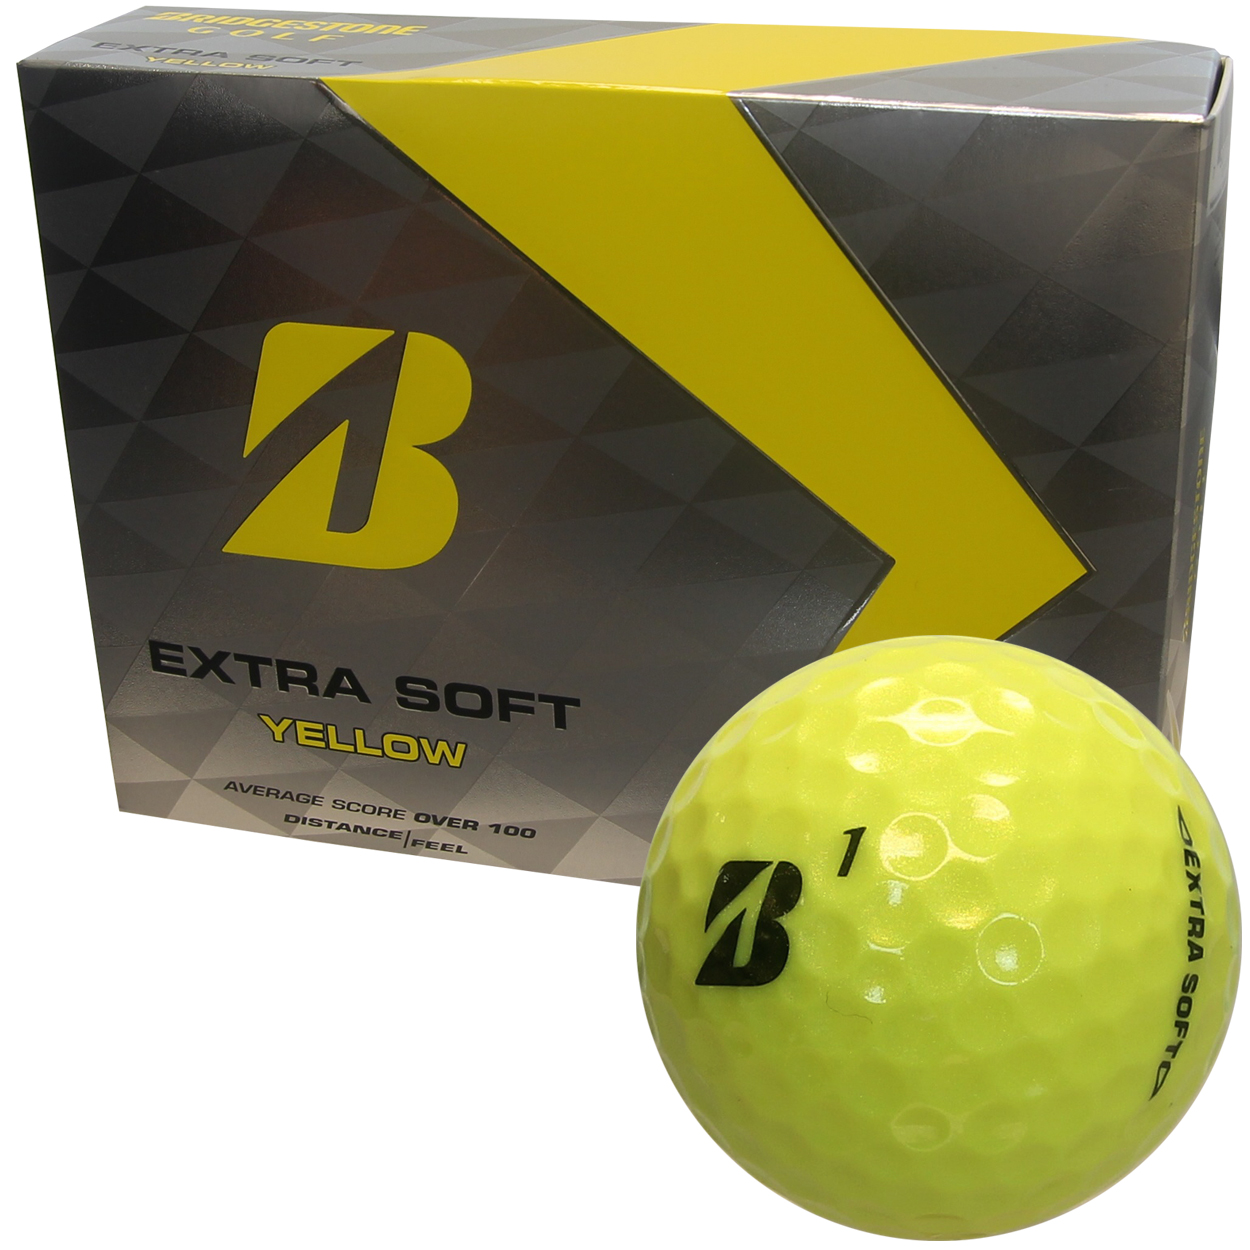 The Bridgestone Extra Soft Golf Ball features: Softer gradational core for longer distance. Soft responsive ionomer cover for extreme control and greenside feel.330 seamless dimple design for optimal ball flight. Designed for the average player. But not your average golf ball! QTY: 12 (1 Dozen)